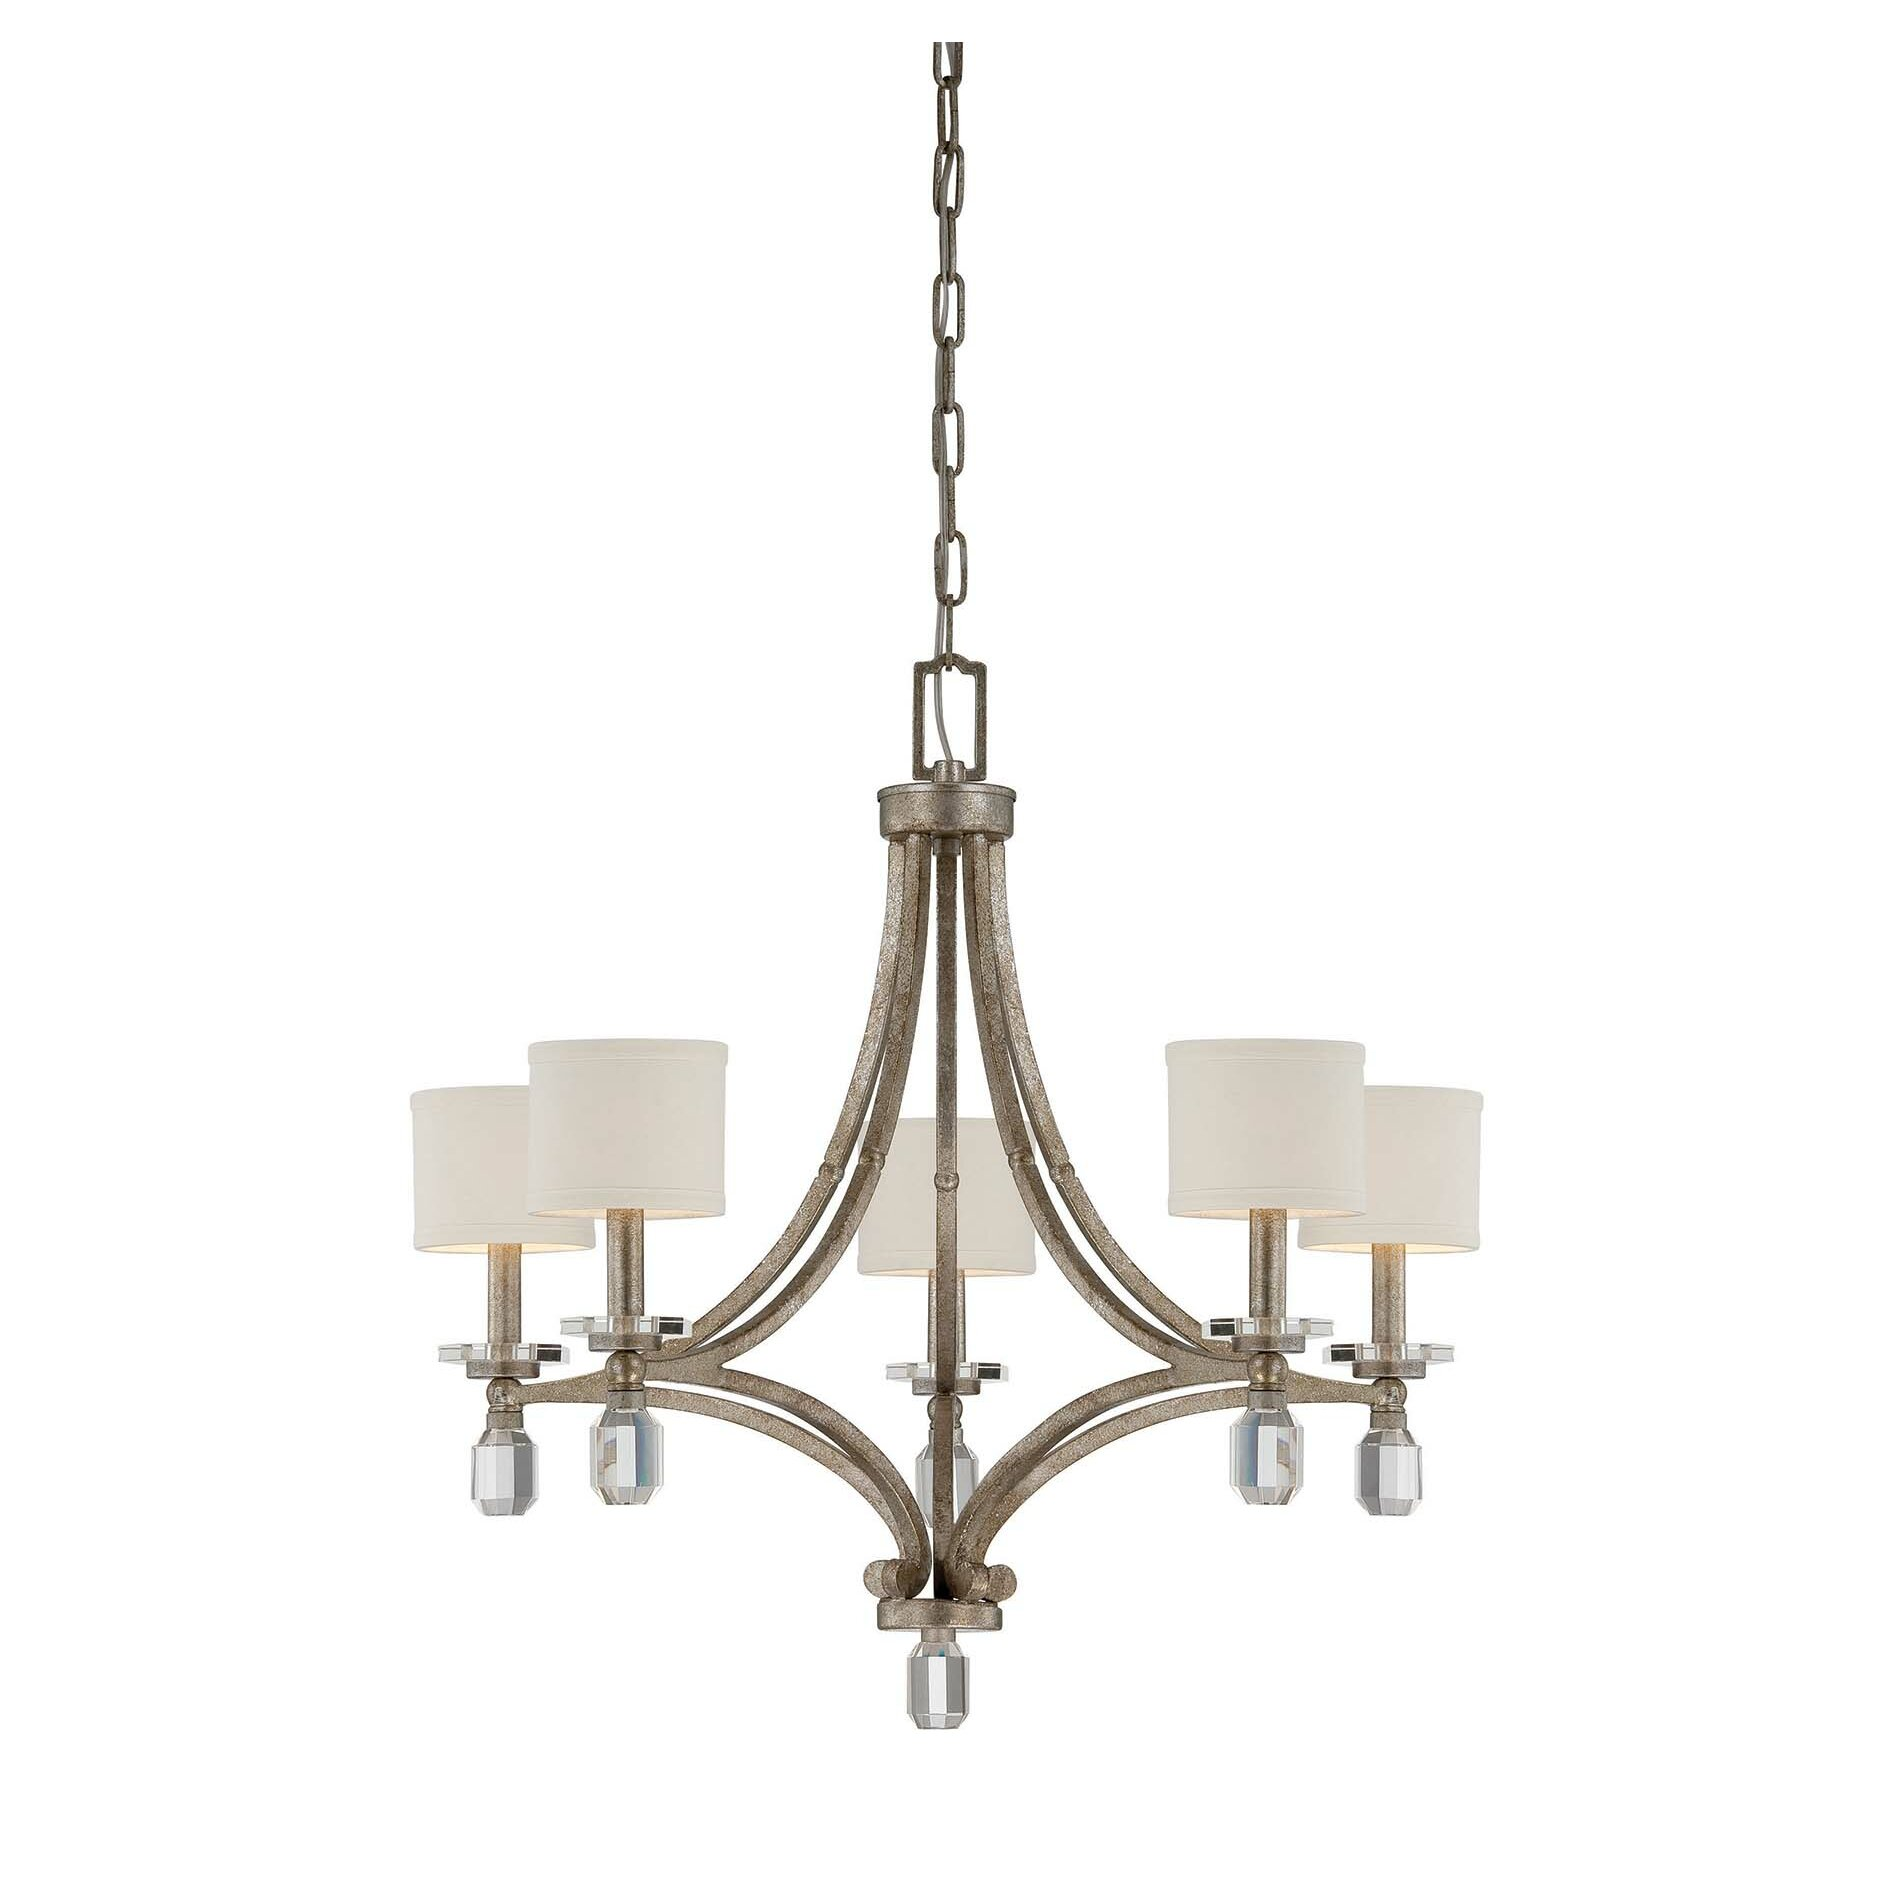 Savoy house filament 5 light chandelier wayfair for Savoy house